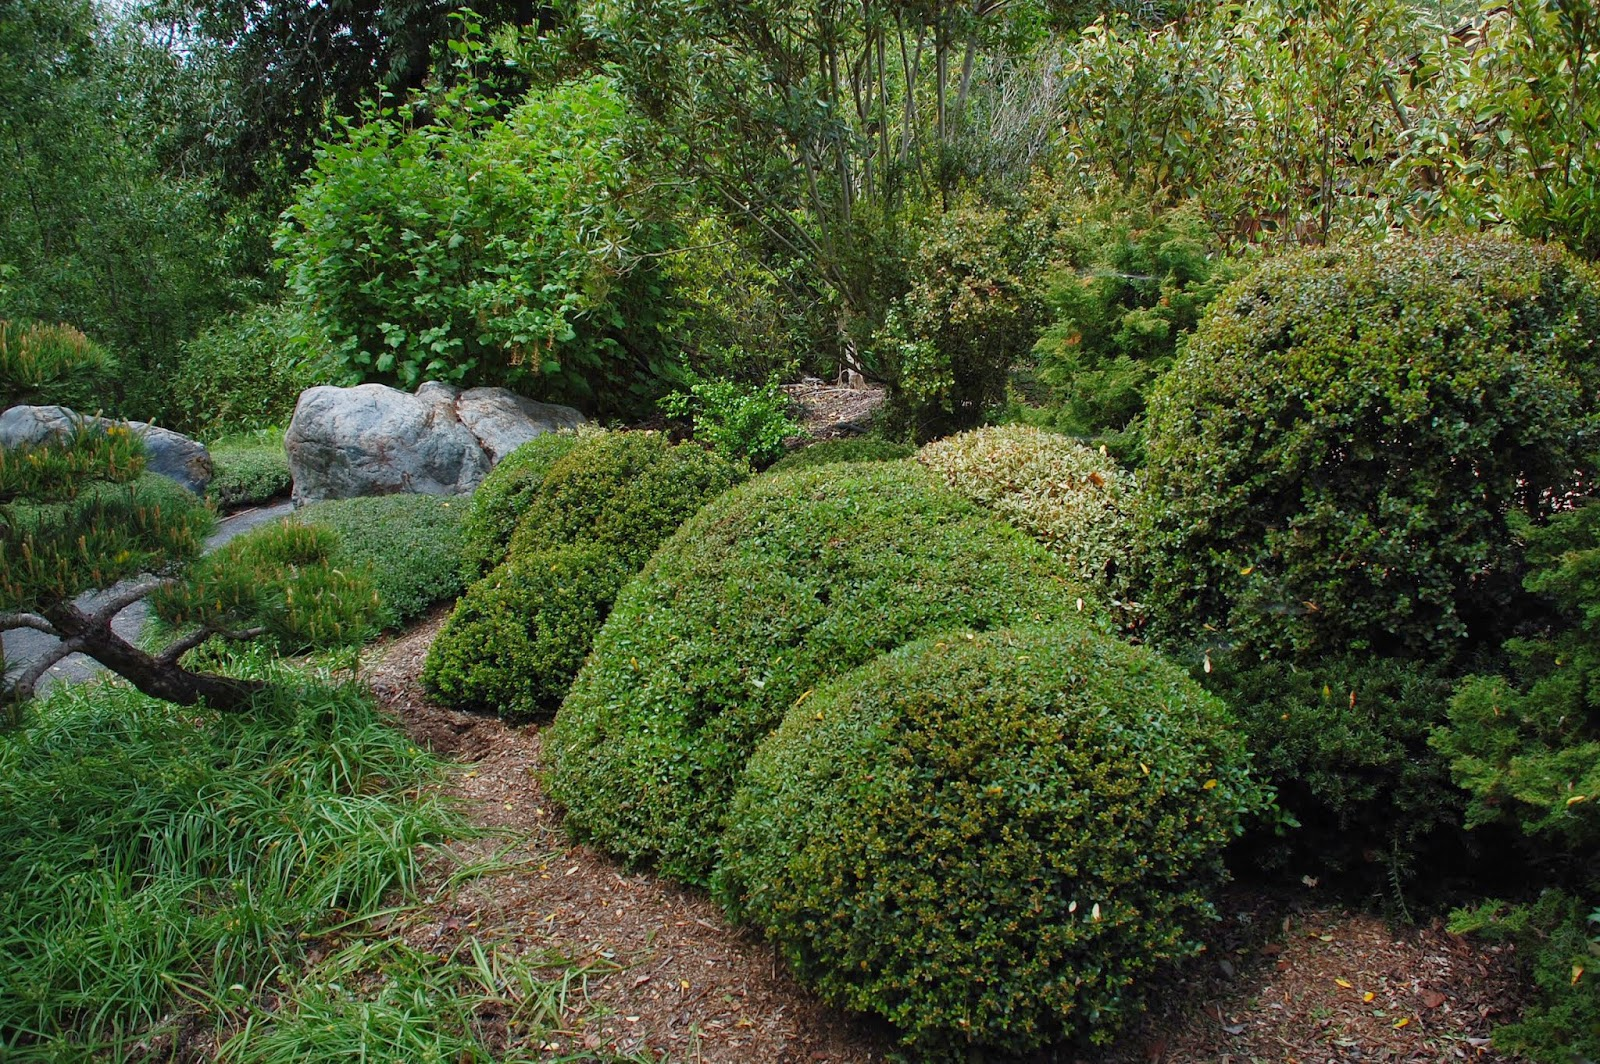 Robert ketchell 39 s blog pruning and the japanese garden for Japanese outdoor plants